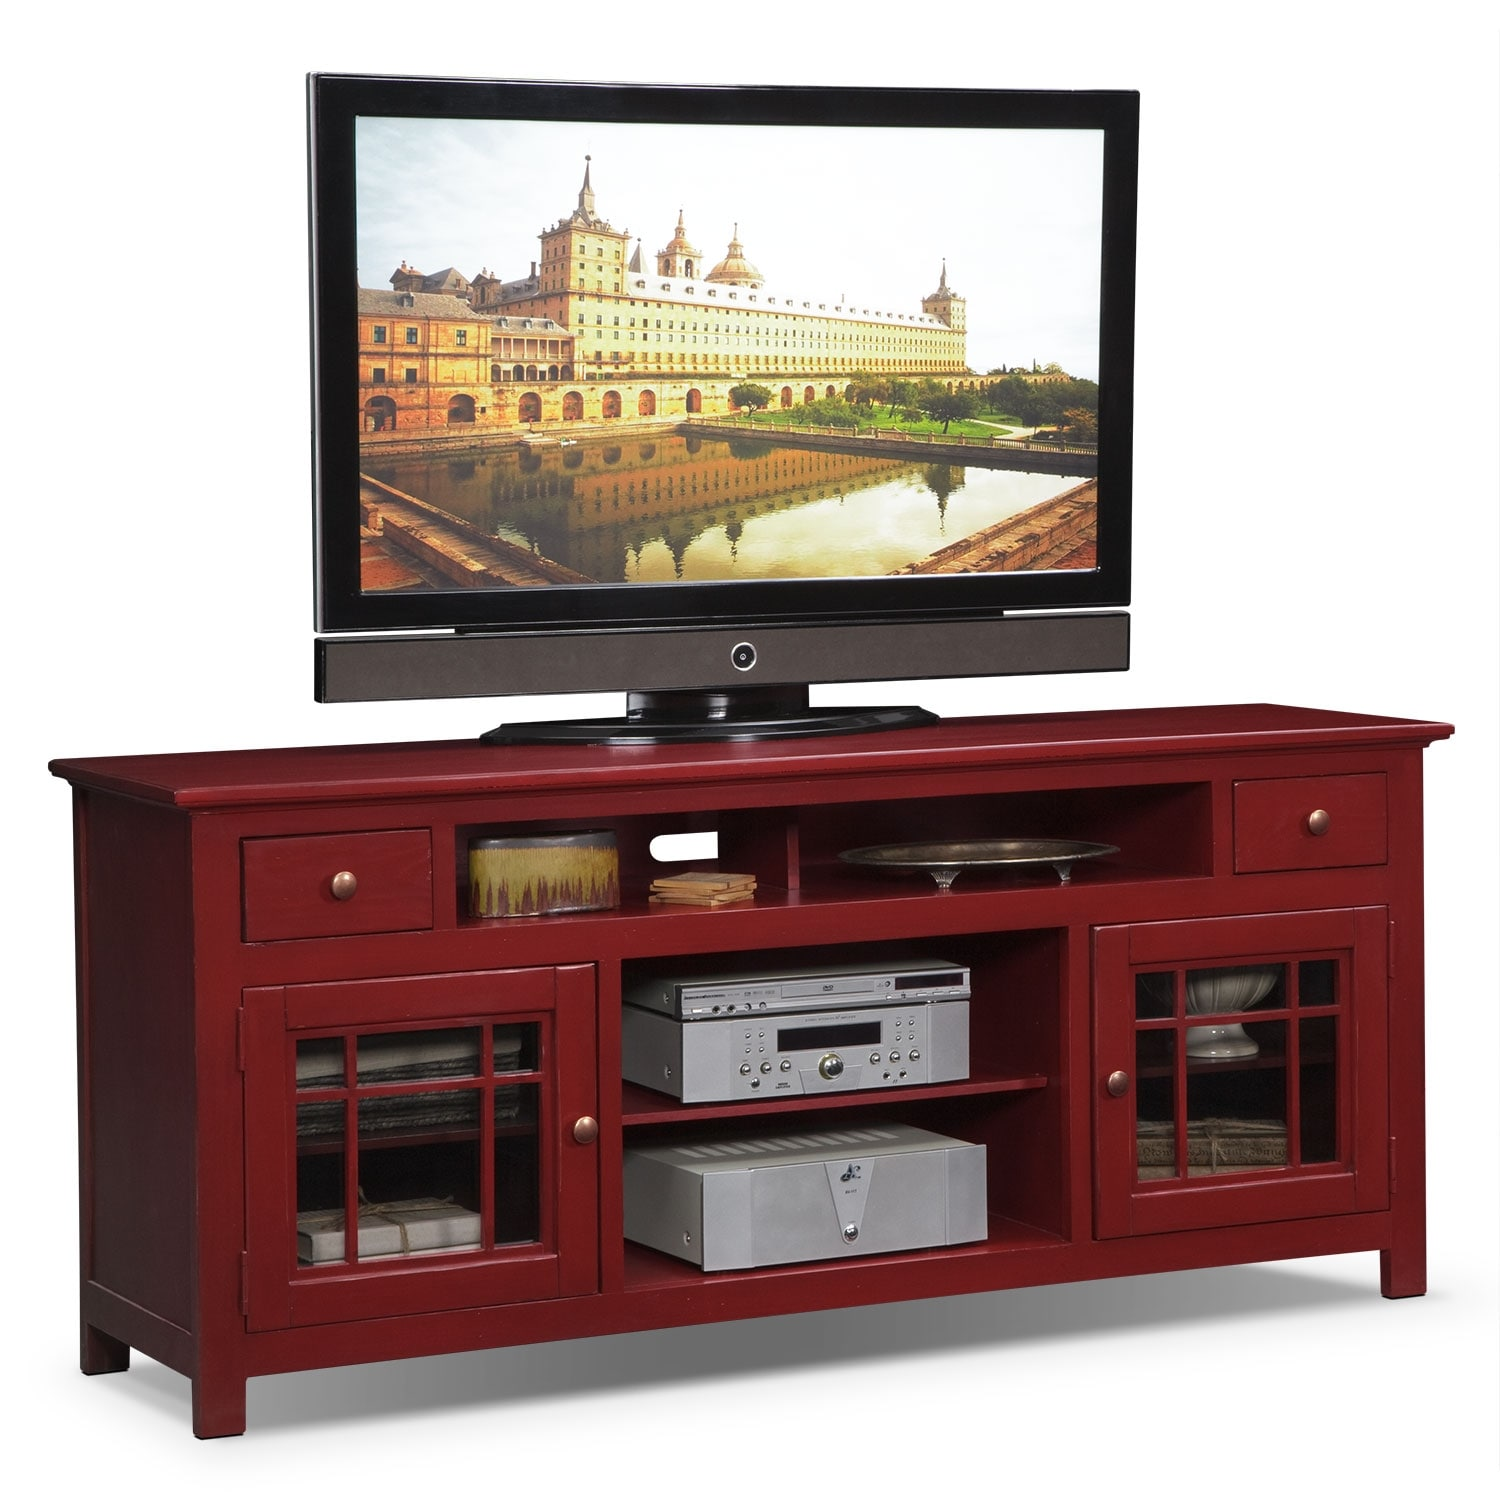 merrick  tv stand  red  value city furniture -  tv stand  red hover to zoom